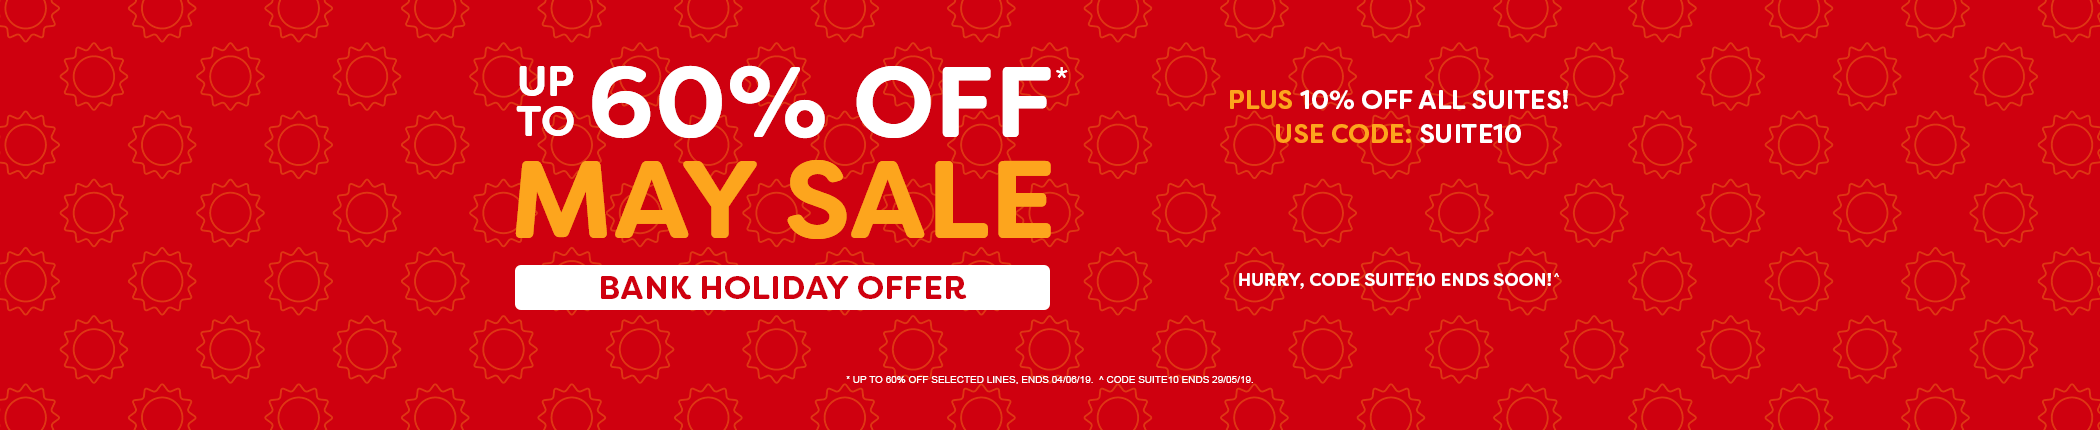 May Sale - Plus 10% Off Suites Bank Holiday Offer